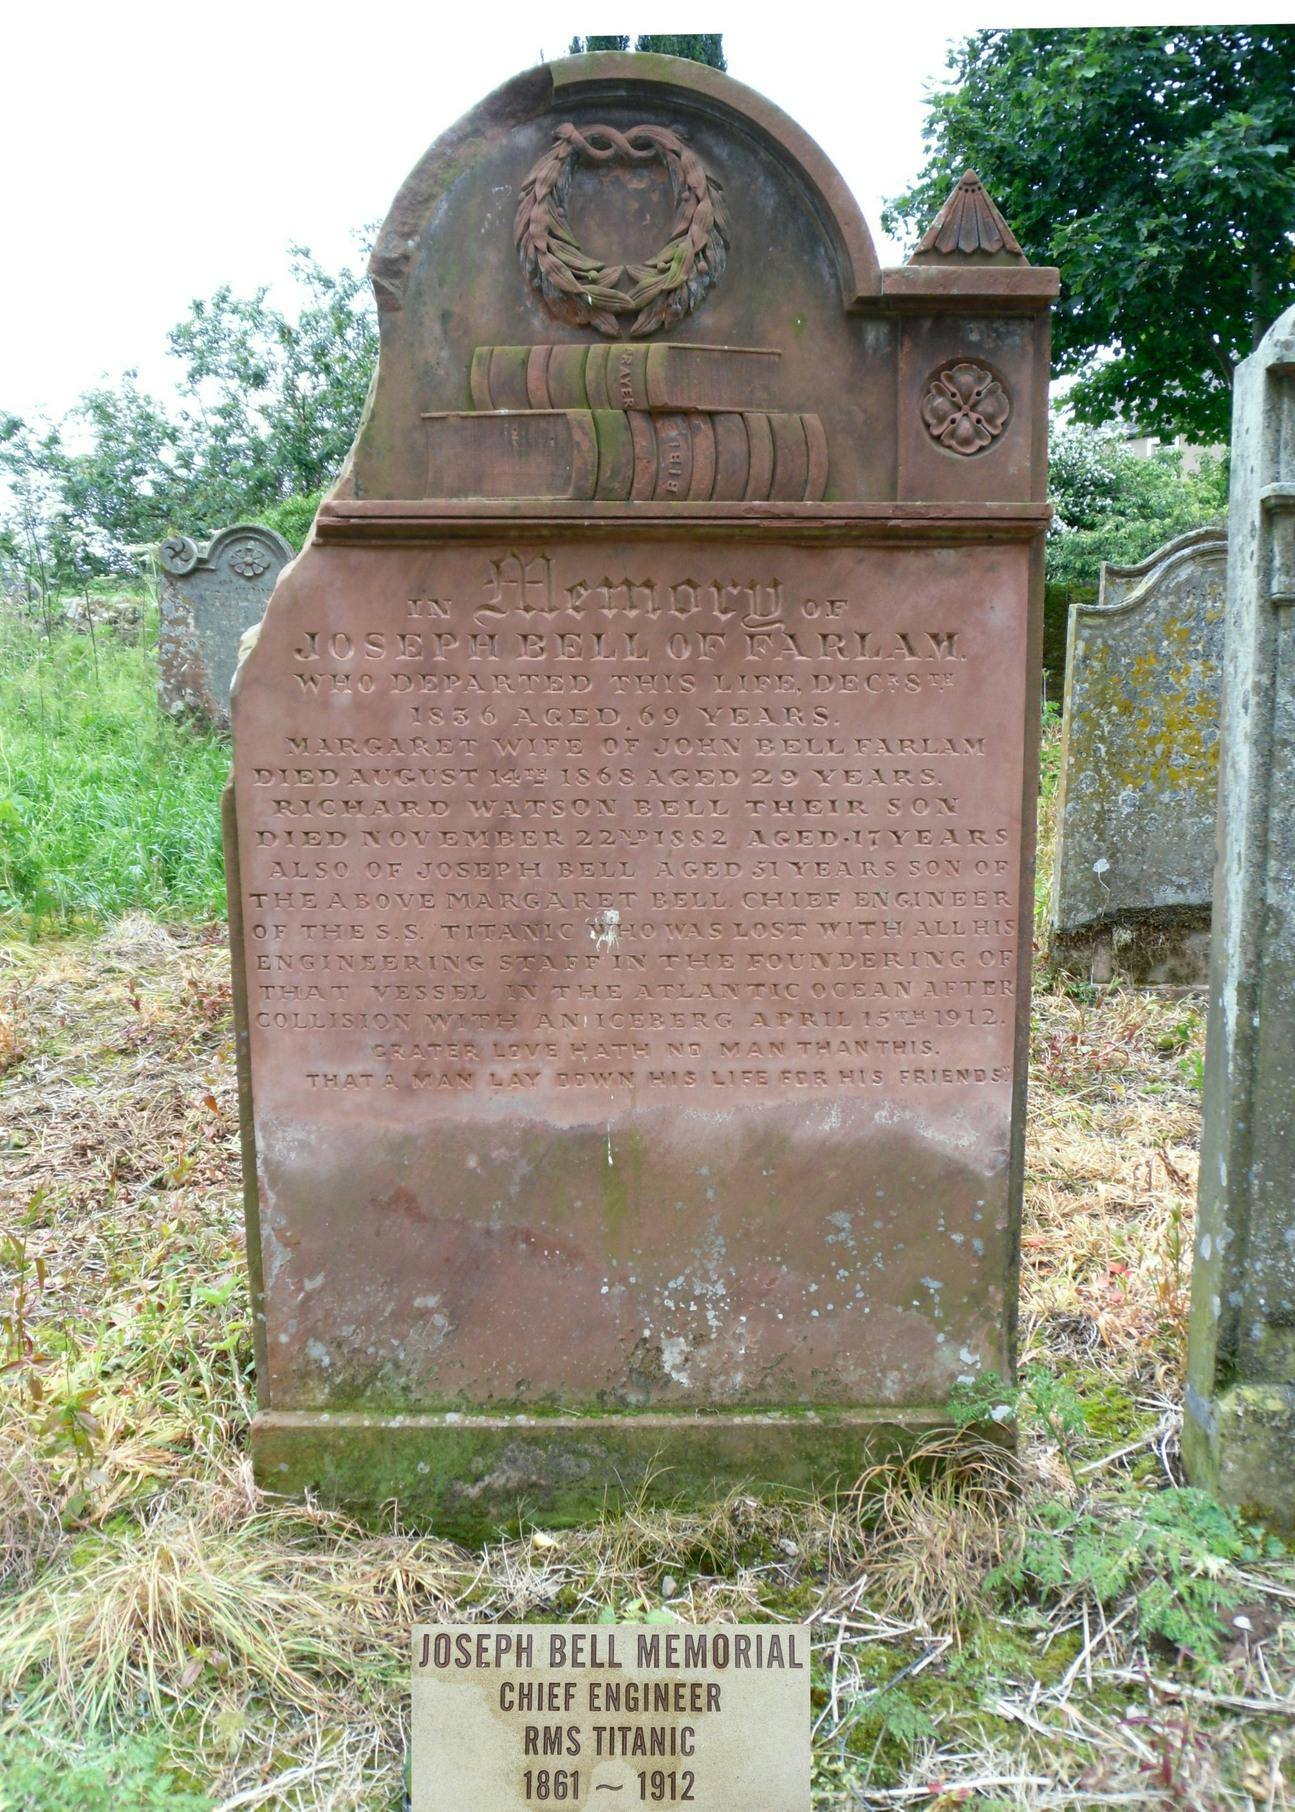 Joseph Bell was the chief engineer on the Titanic and went down with the ship. His family home was in Farlam and his name was add to the Family headstone in the old grave yard at Kirkhouse